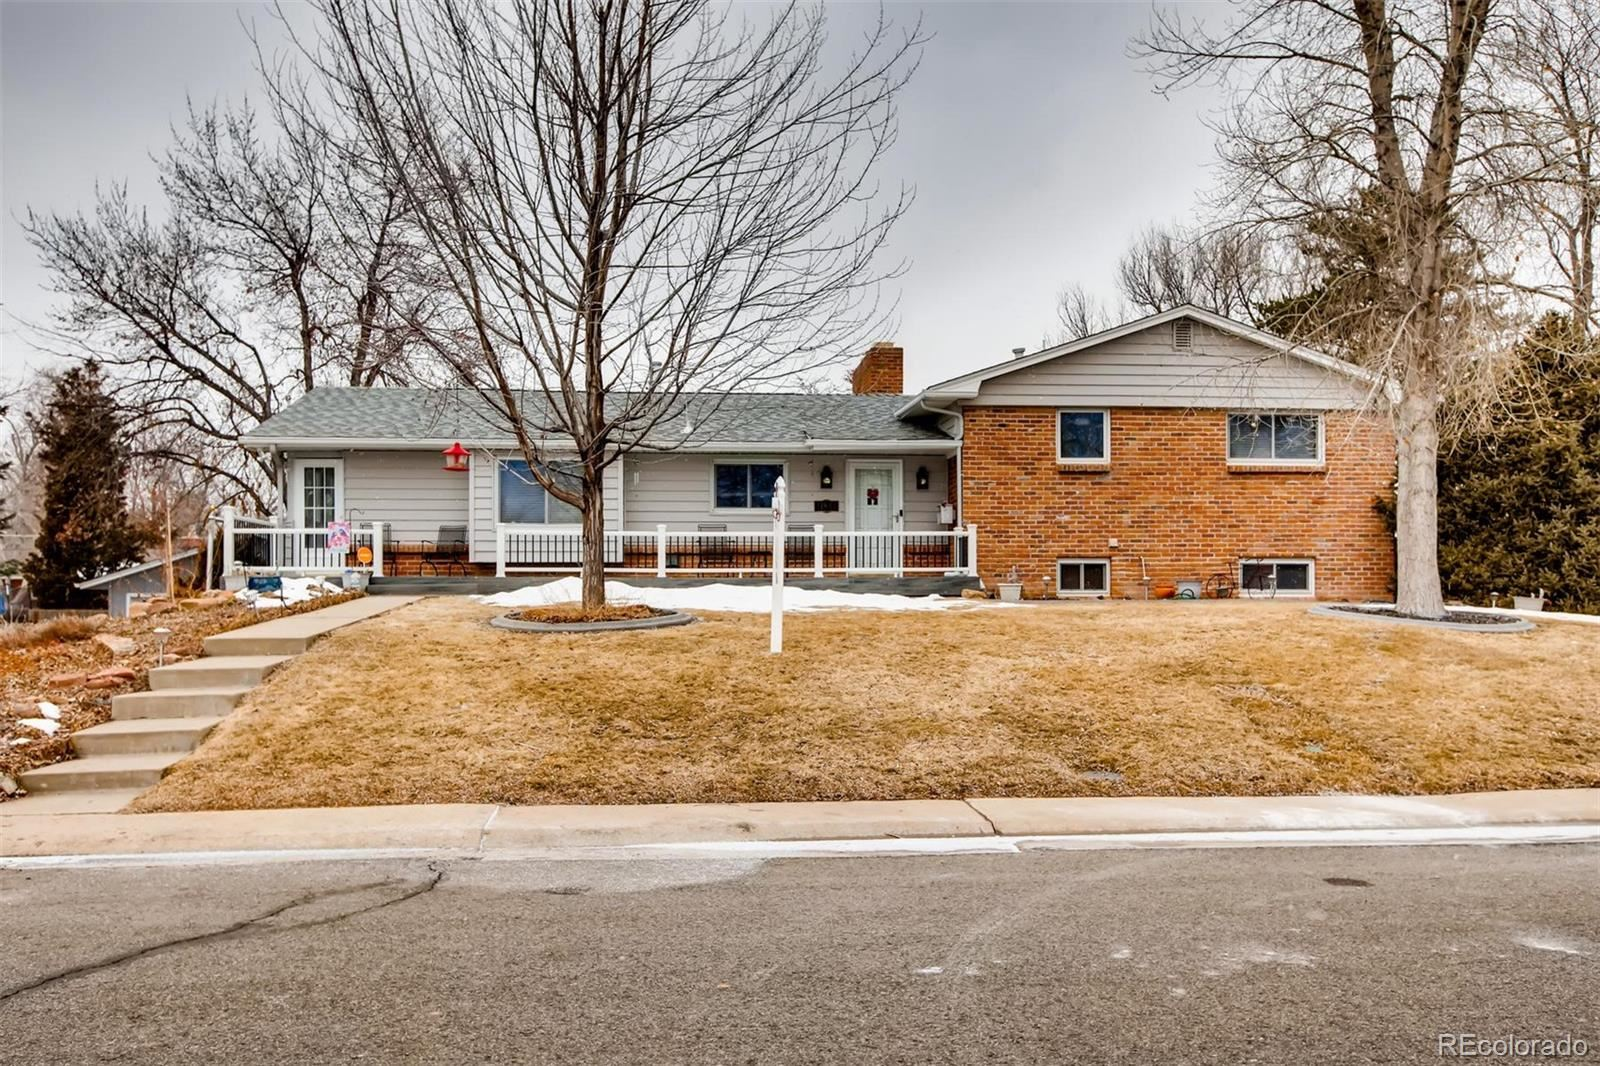 11845 W 30th Place, Lakewood, CO 80215 - #: 1929729